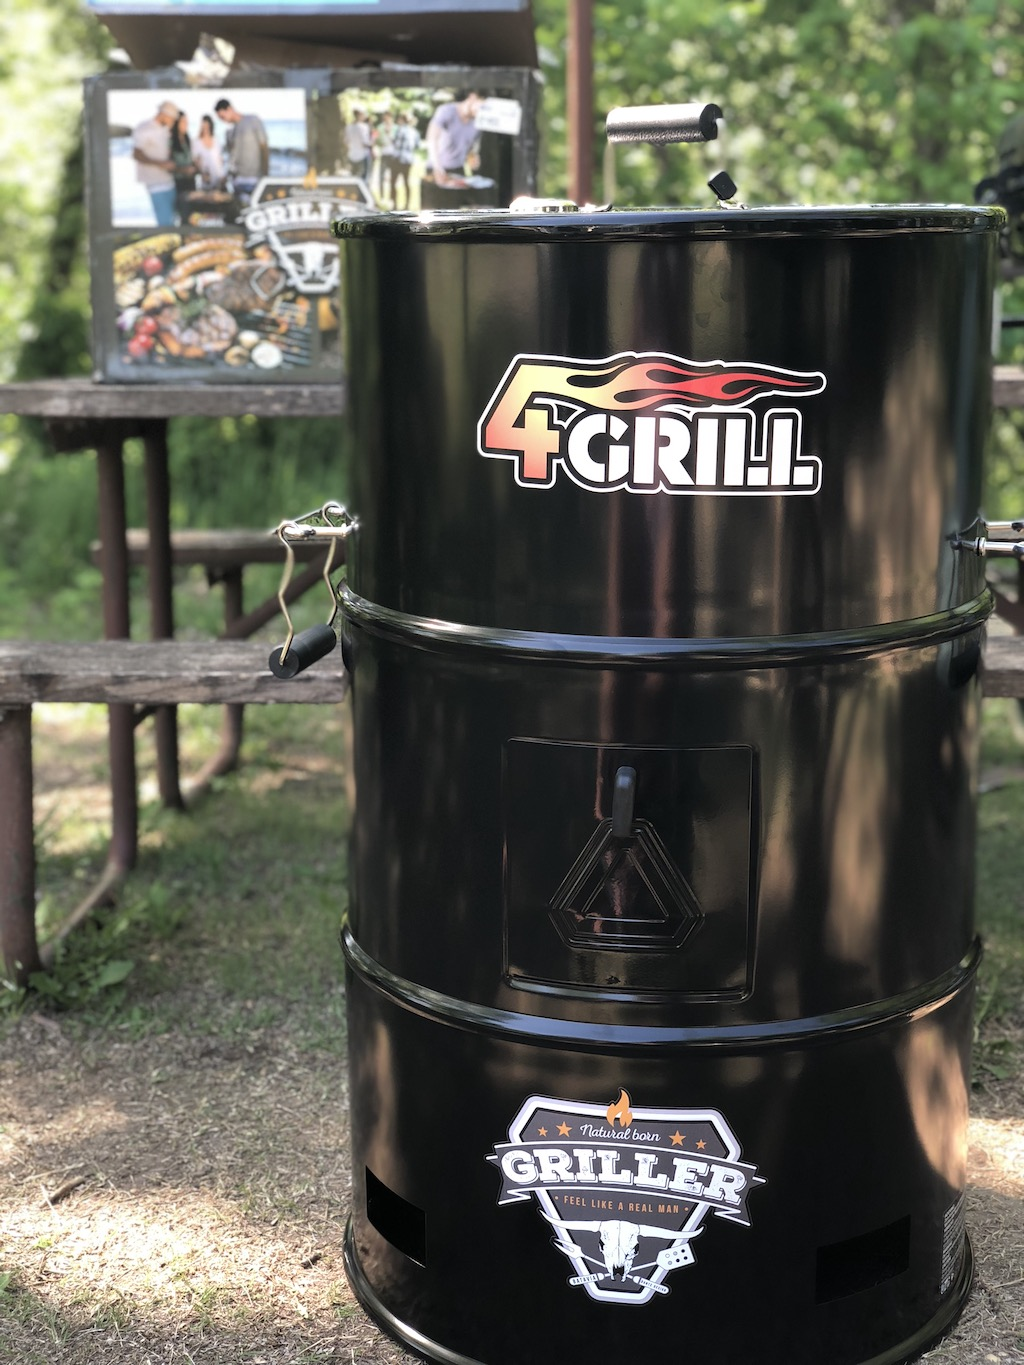 4grill complete with stickers